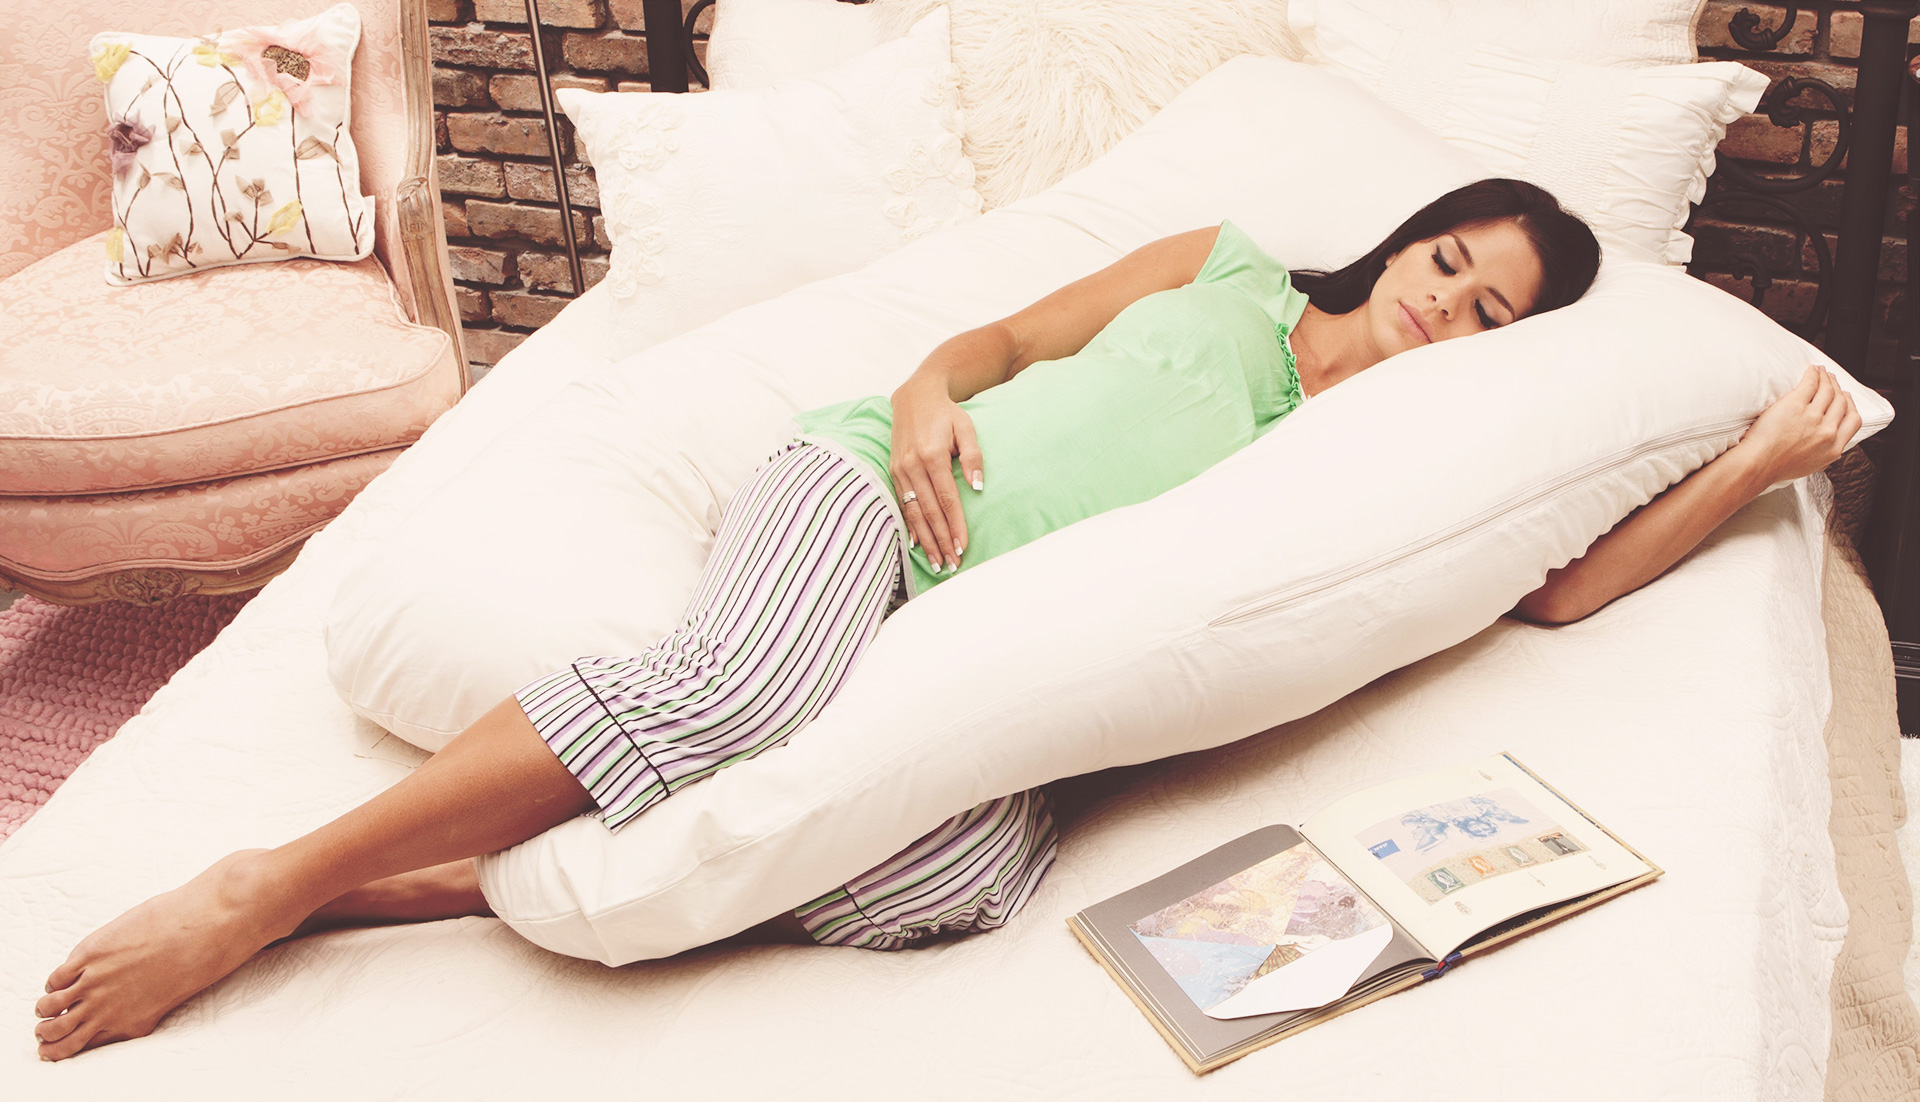 Mom 39 S Guide 2016 Best Pregnancy Pillow For Comfy Sleep: the more pillows you sleep with